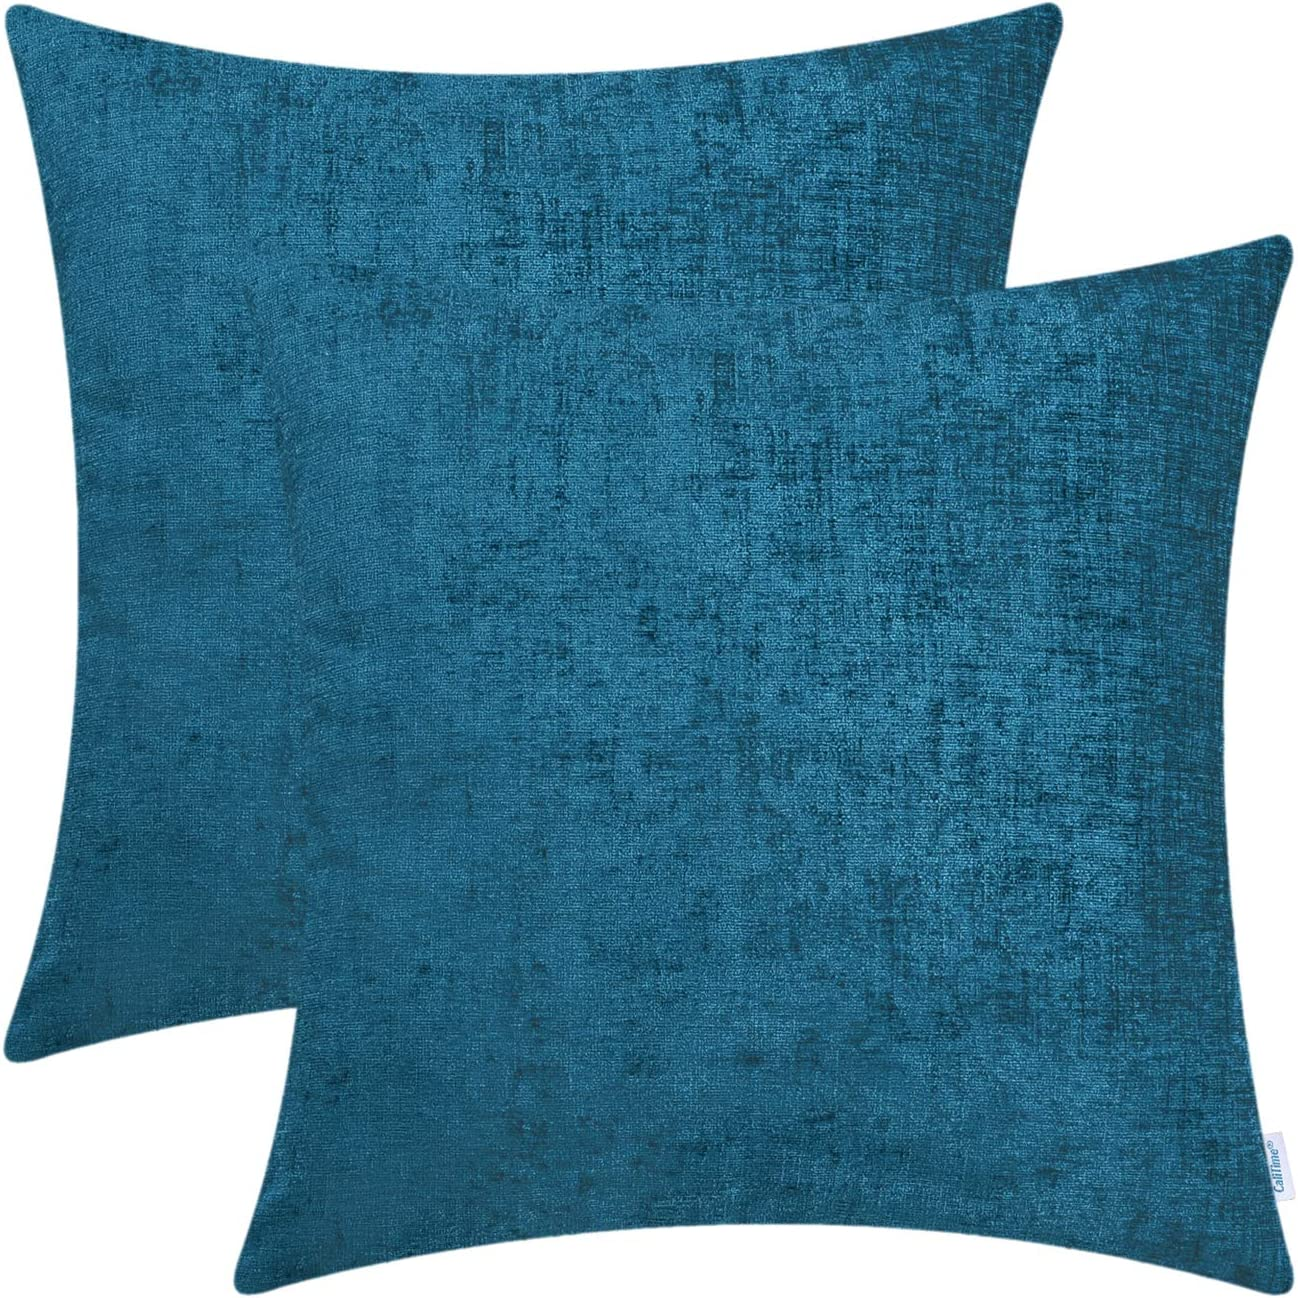 CaliTime Pack of 2 Cozy Throw Pillow Covers Cases for Couch Sofa Home Decoration Solid Dyed Soft Chenille 20 X 20 Inches Ocean Blue